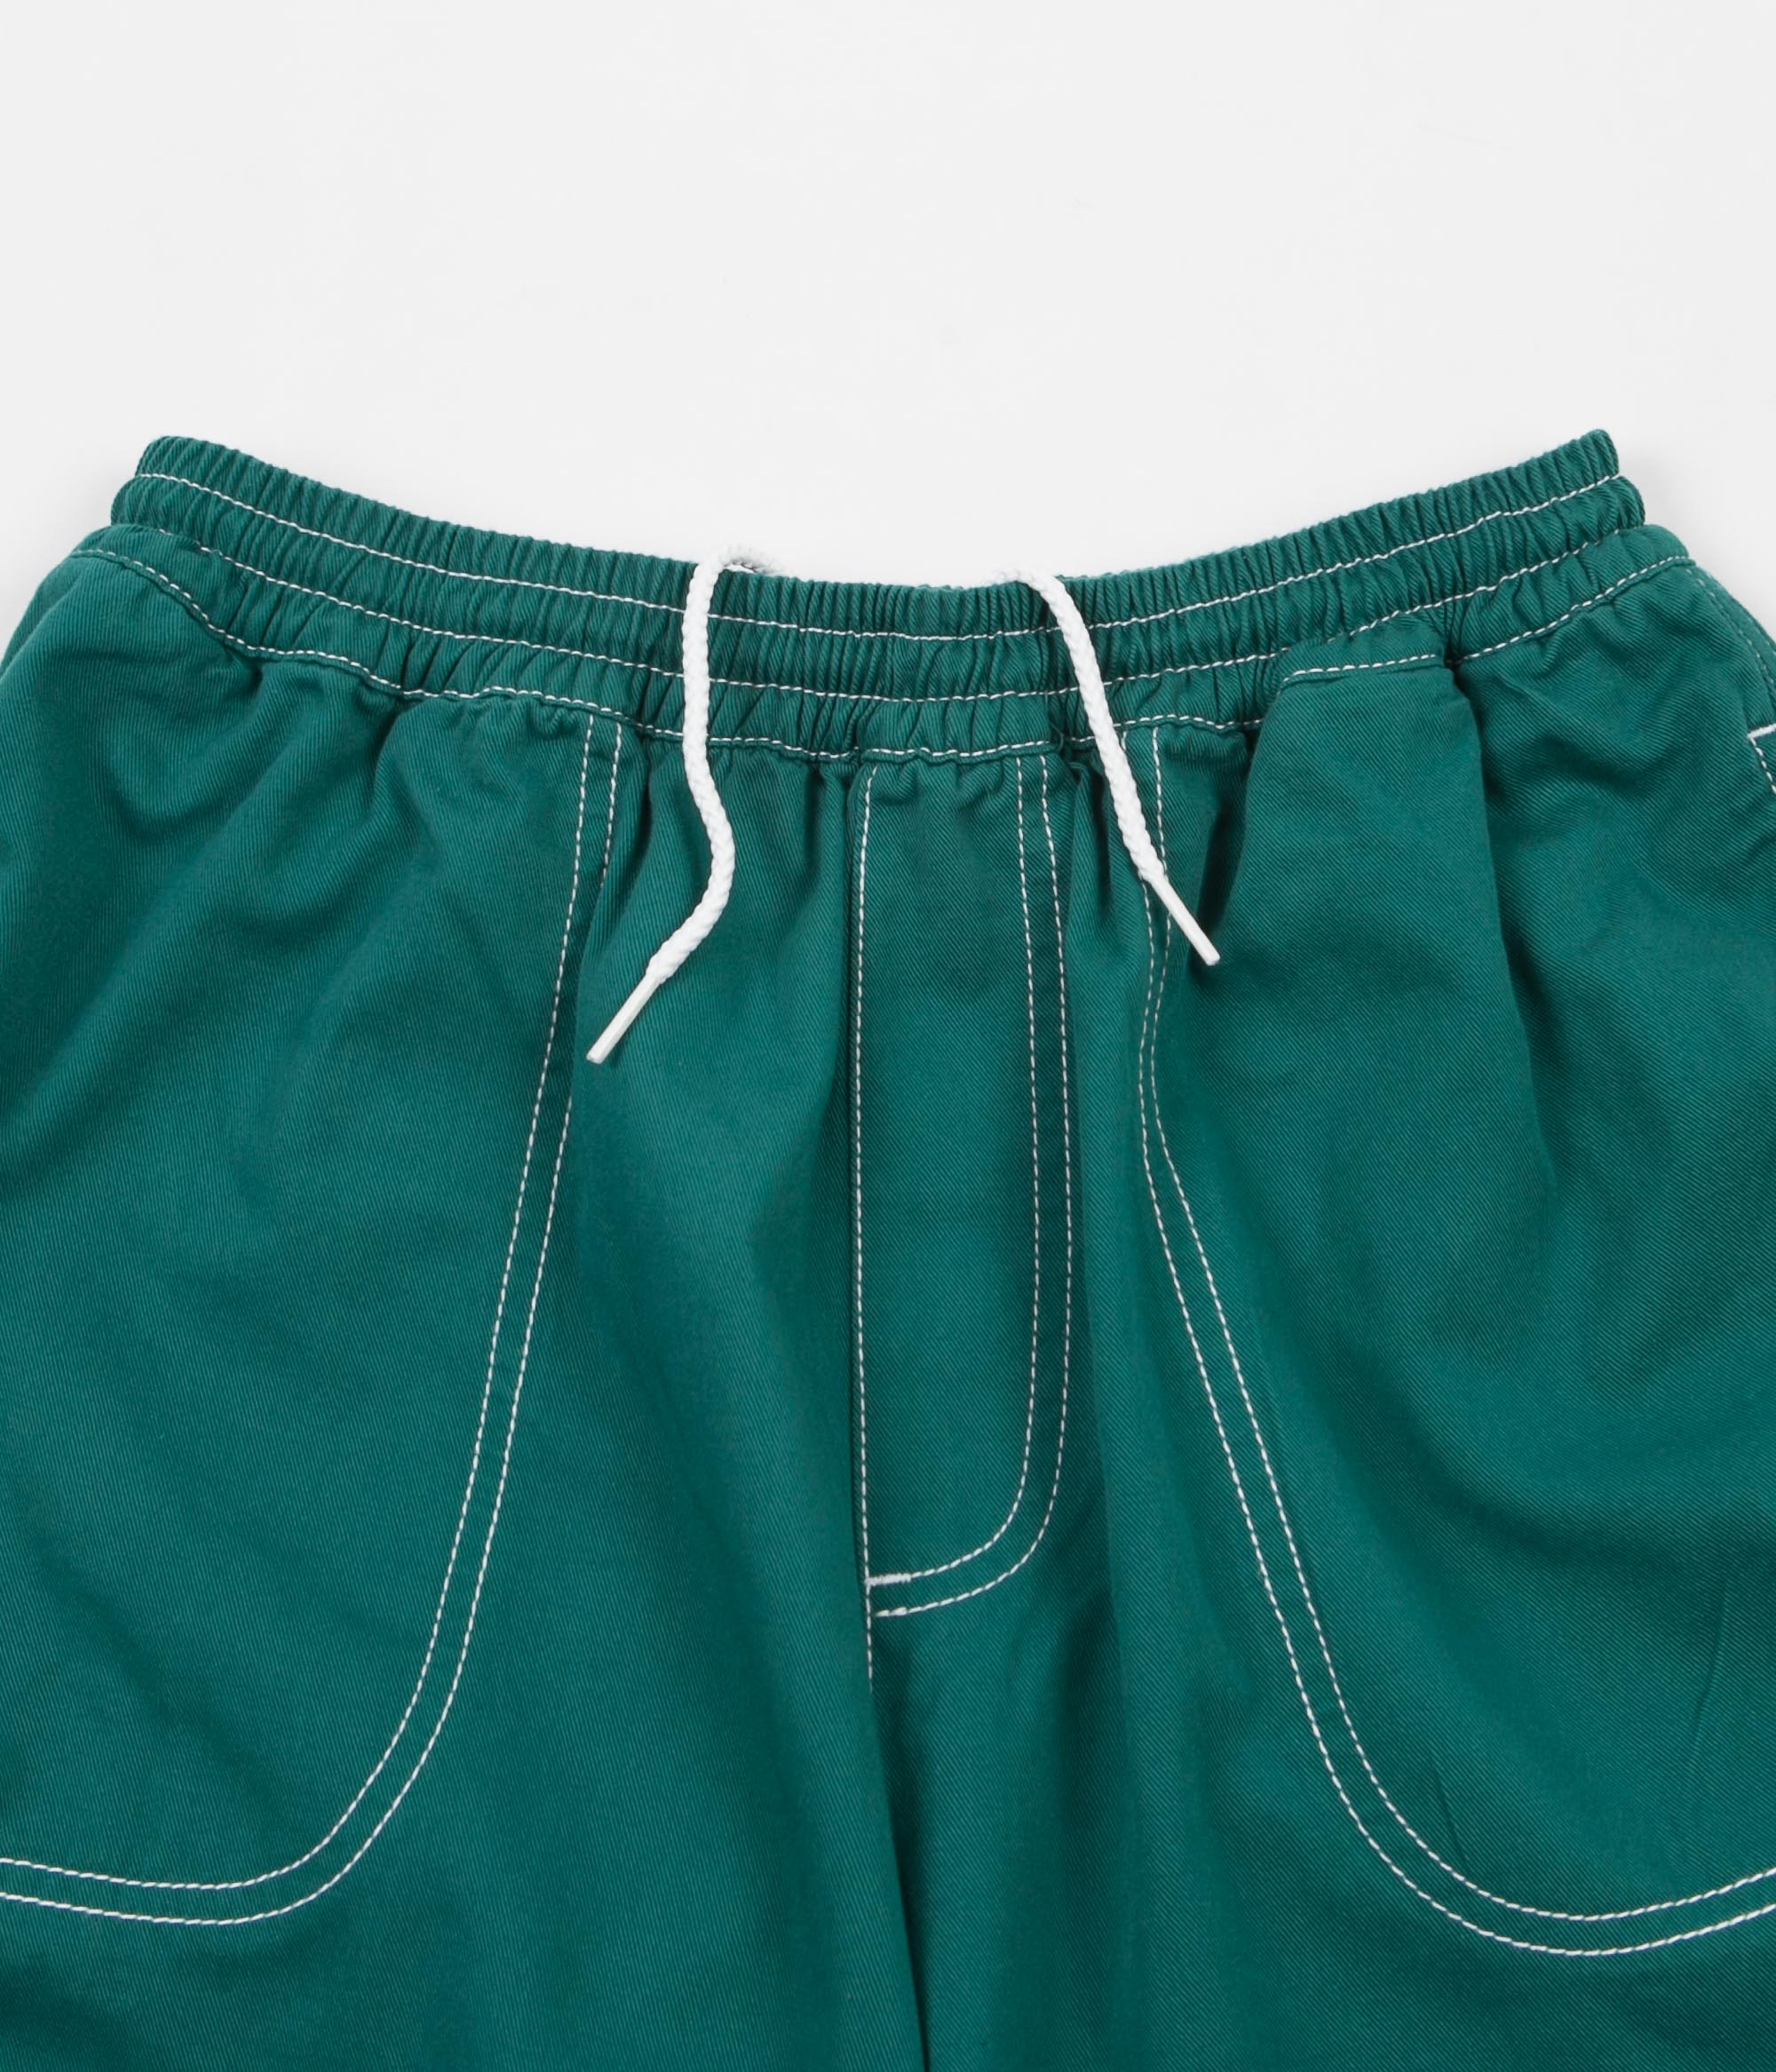 Polar Surf Shorts - Teal